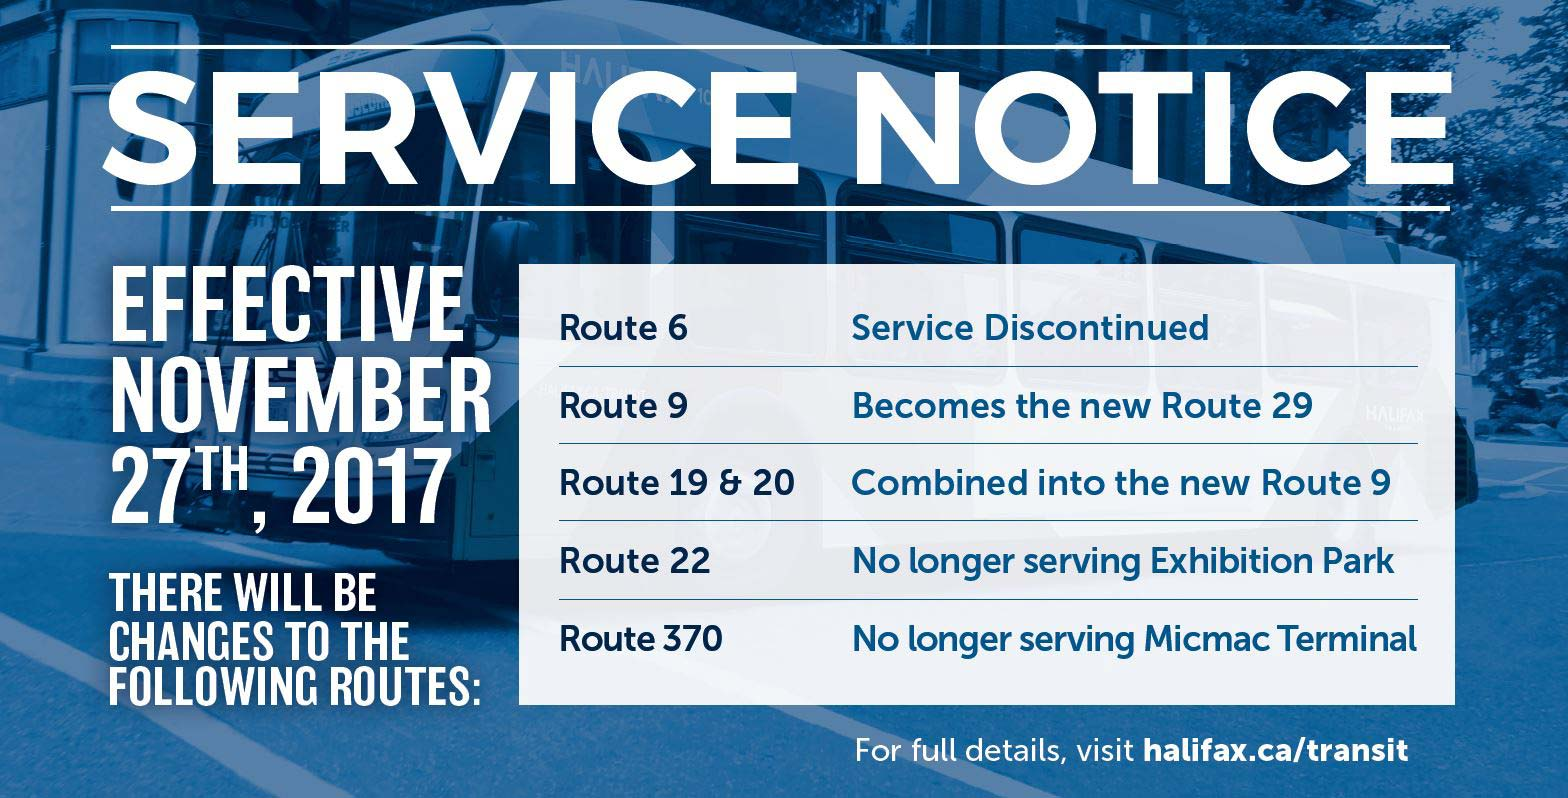 Service Adjustments Effective November 27th, 2017